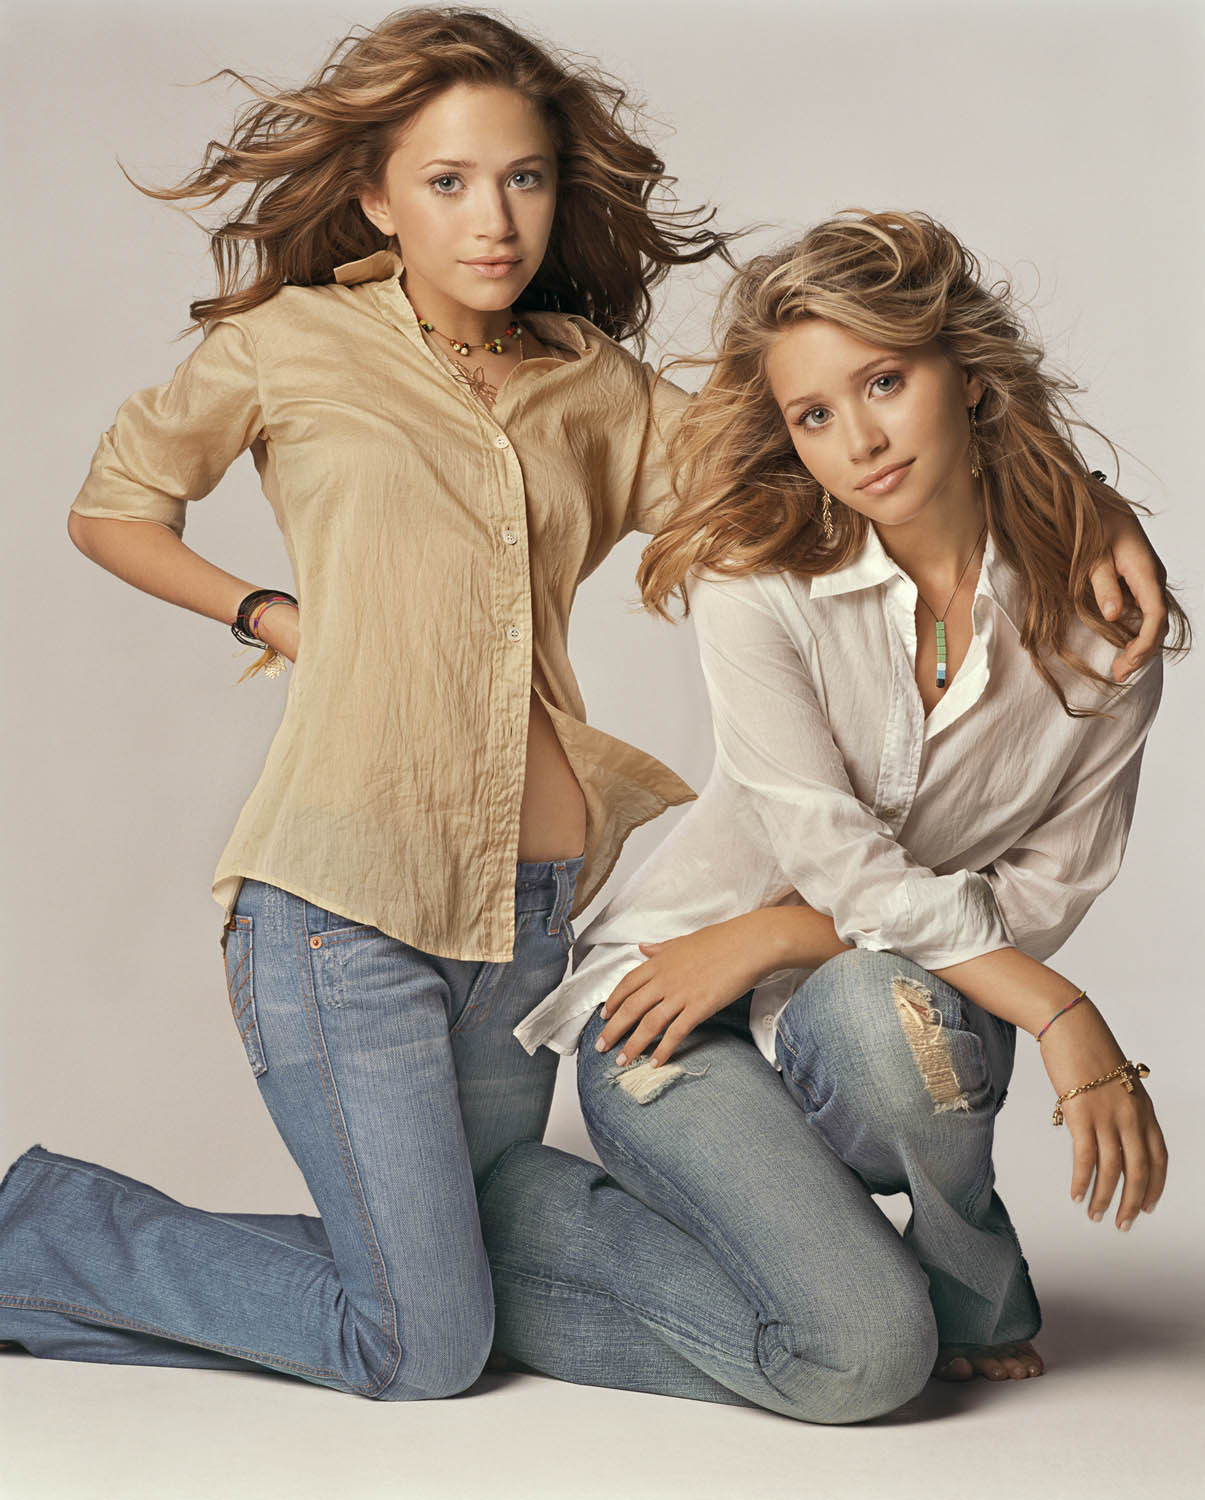 Nude pics of mary kate and ashley olsen